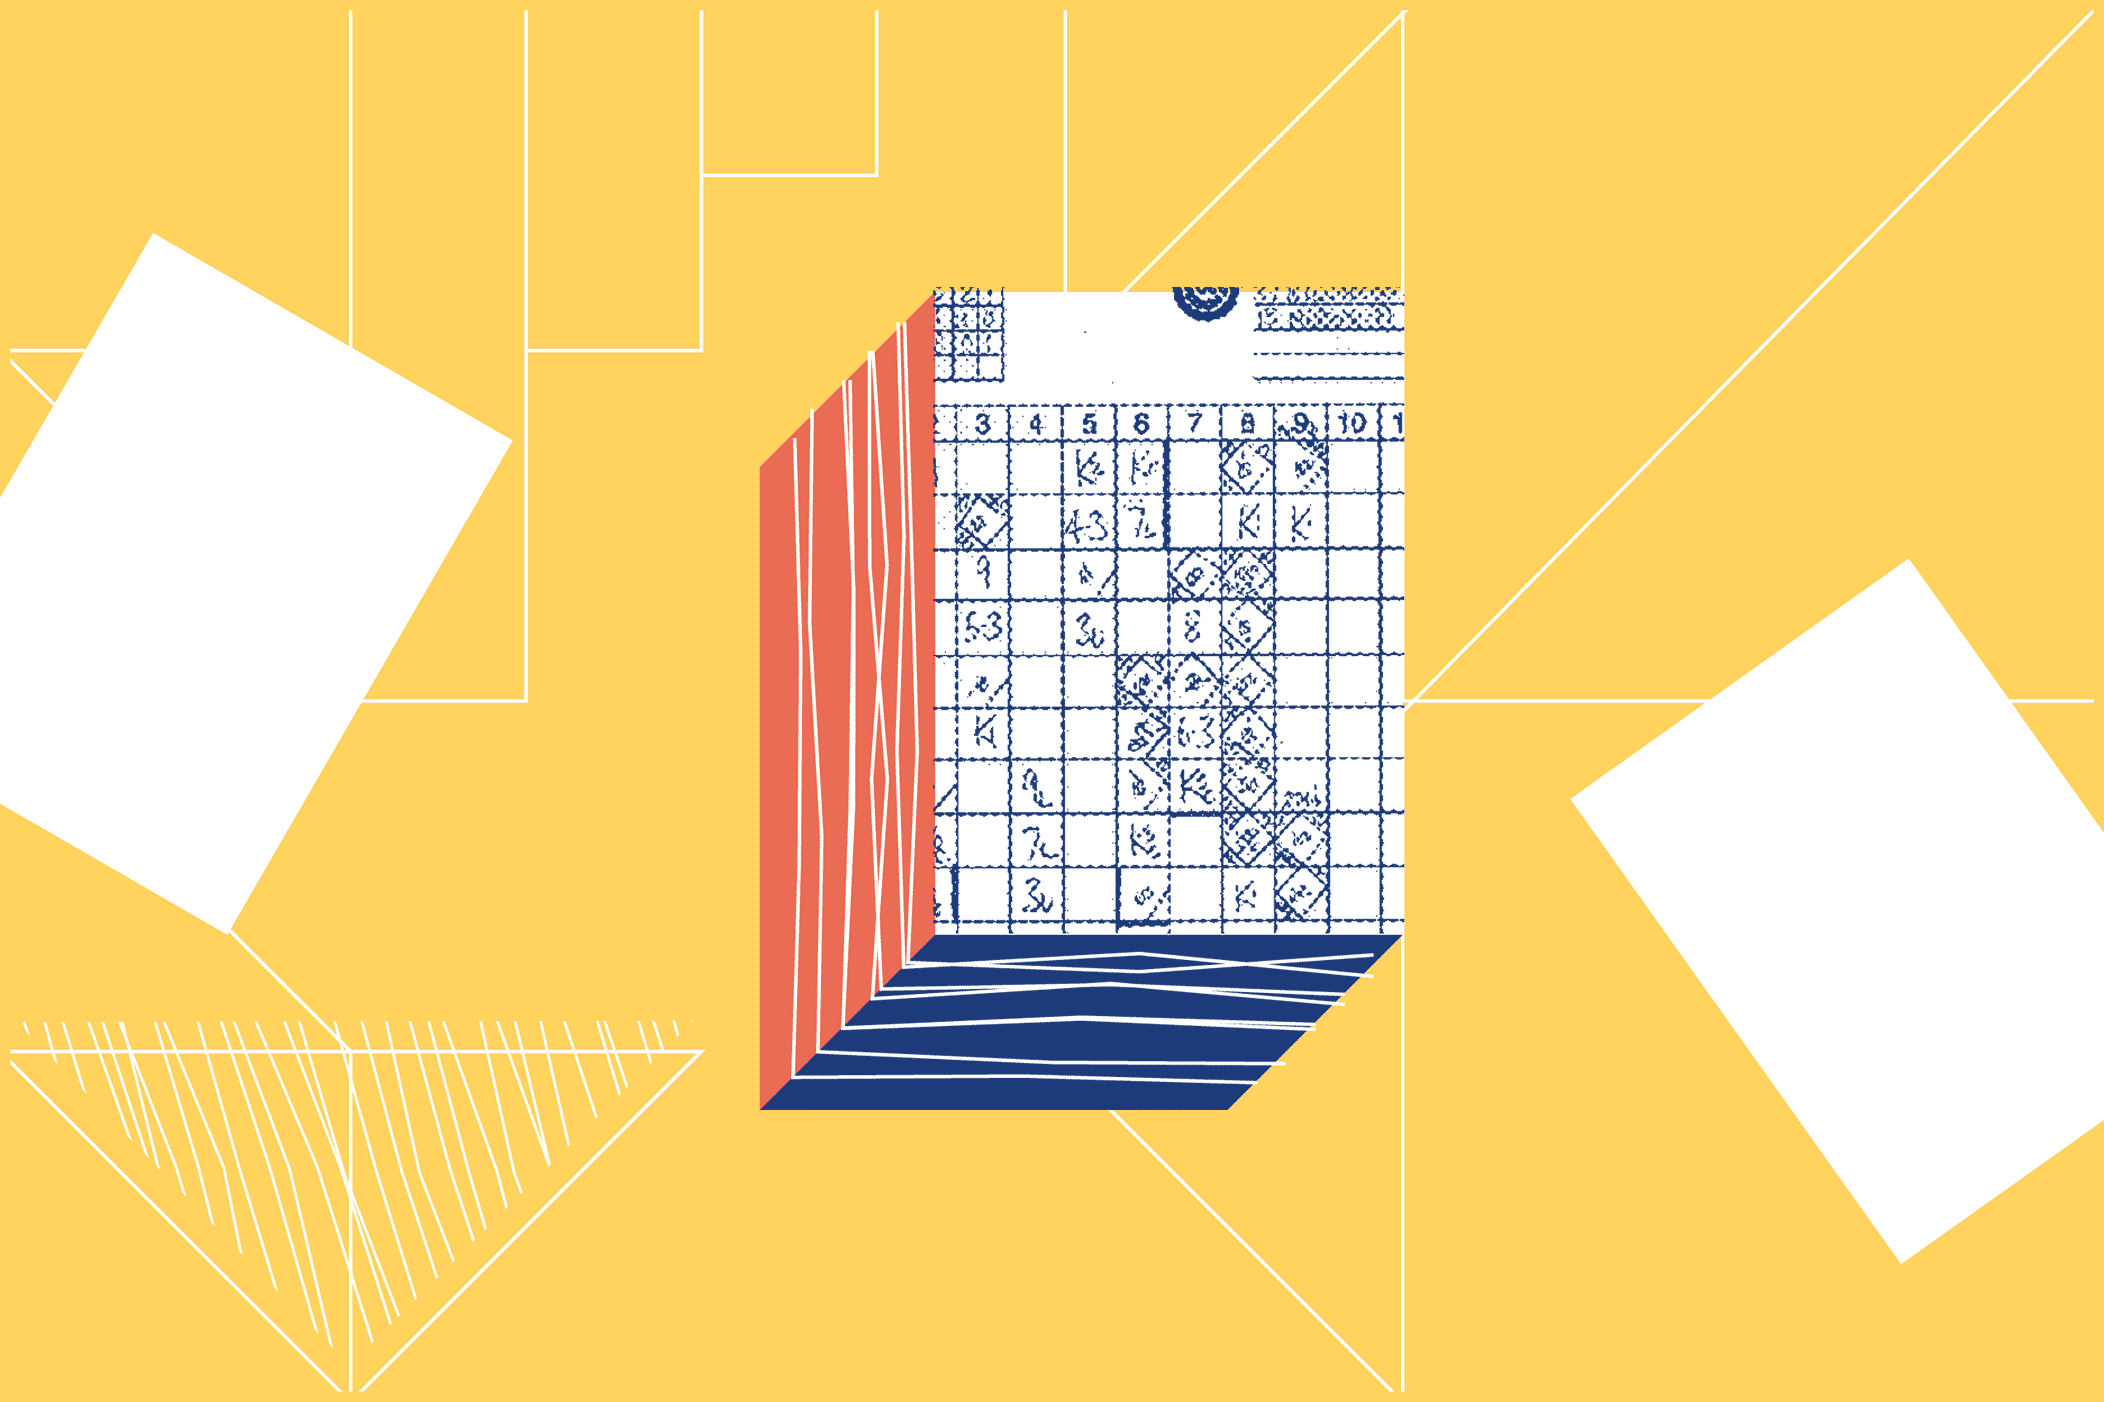 Illustrated notepad with checks and scores marked on it.